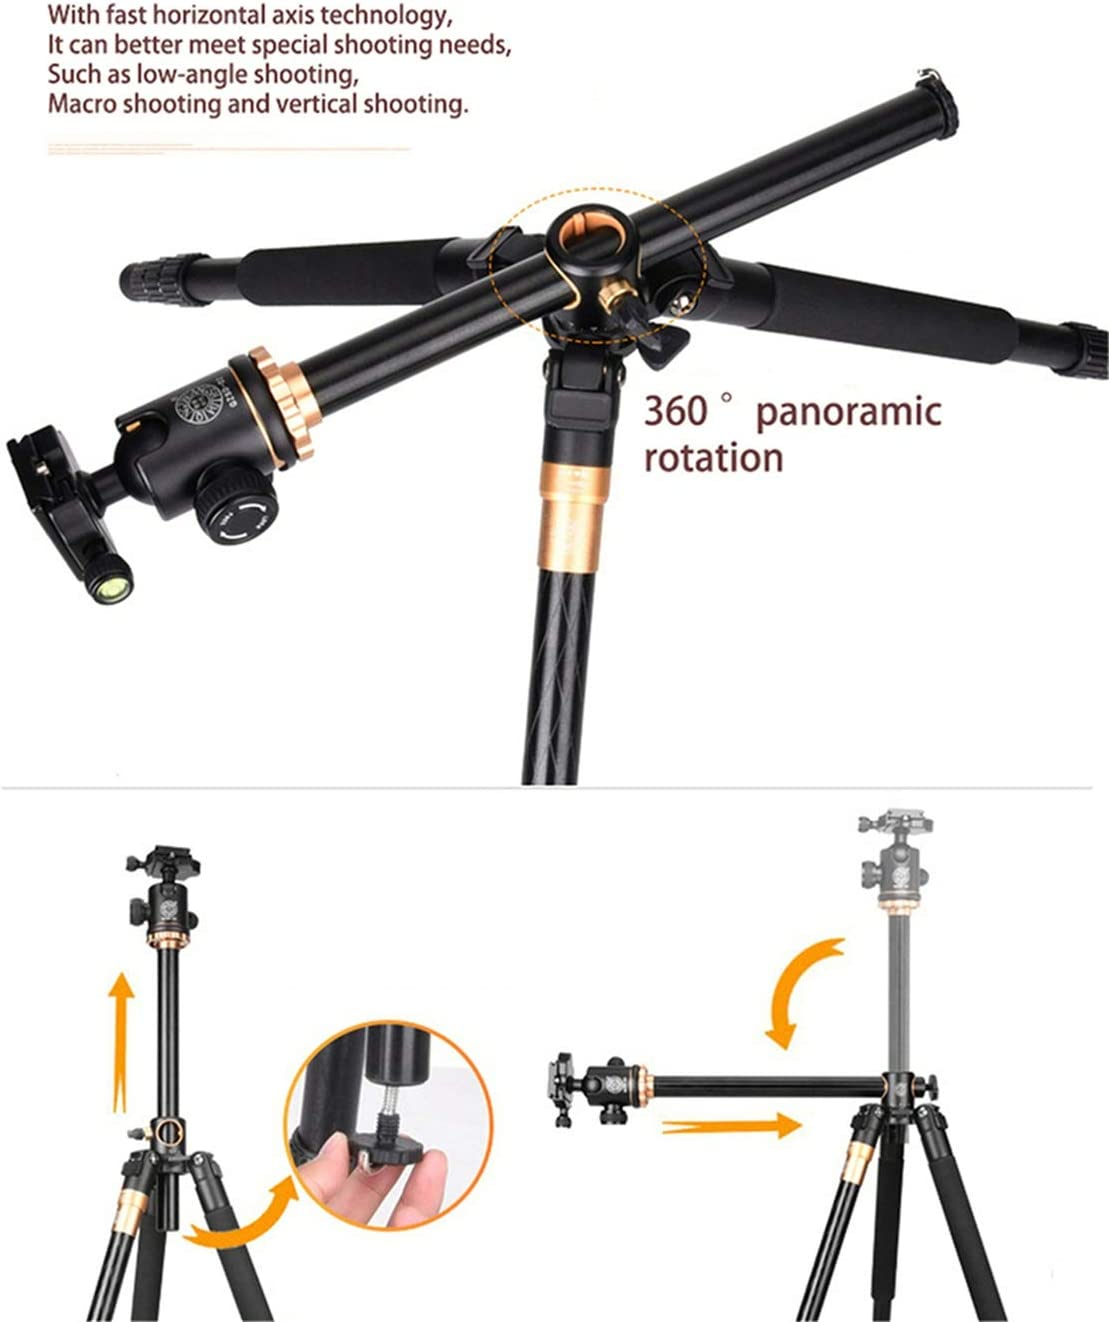 """LLluckyHW Camera Tripod Rotatable Center Column Flexible Portable Three-Way Head Flexible Sturdy Legs 1//4/"""" Quick Release Plate and Carrying Bag Color : Black"""